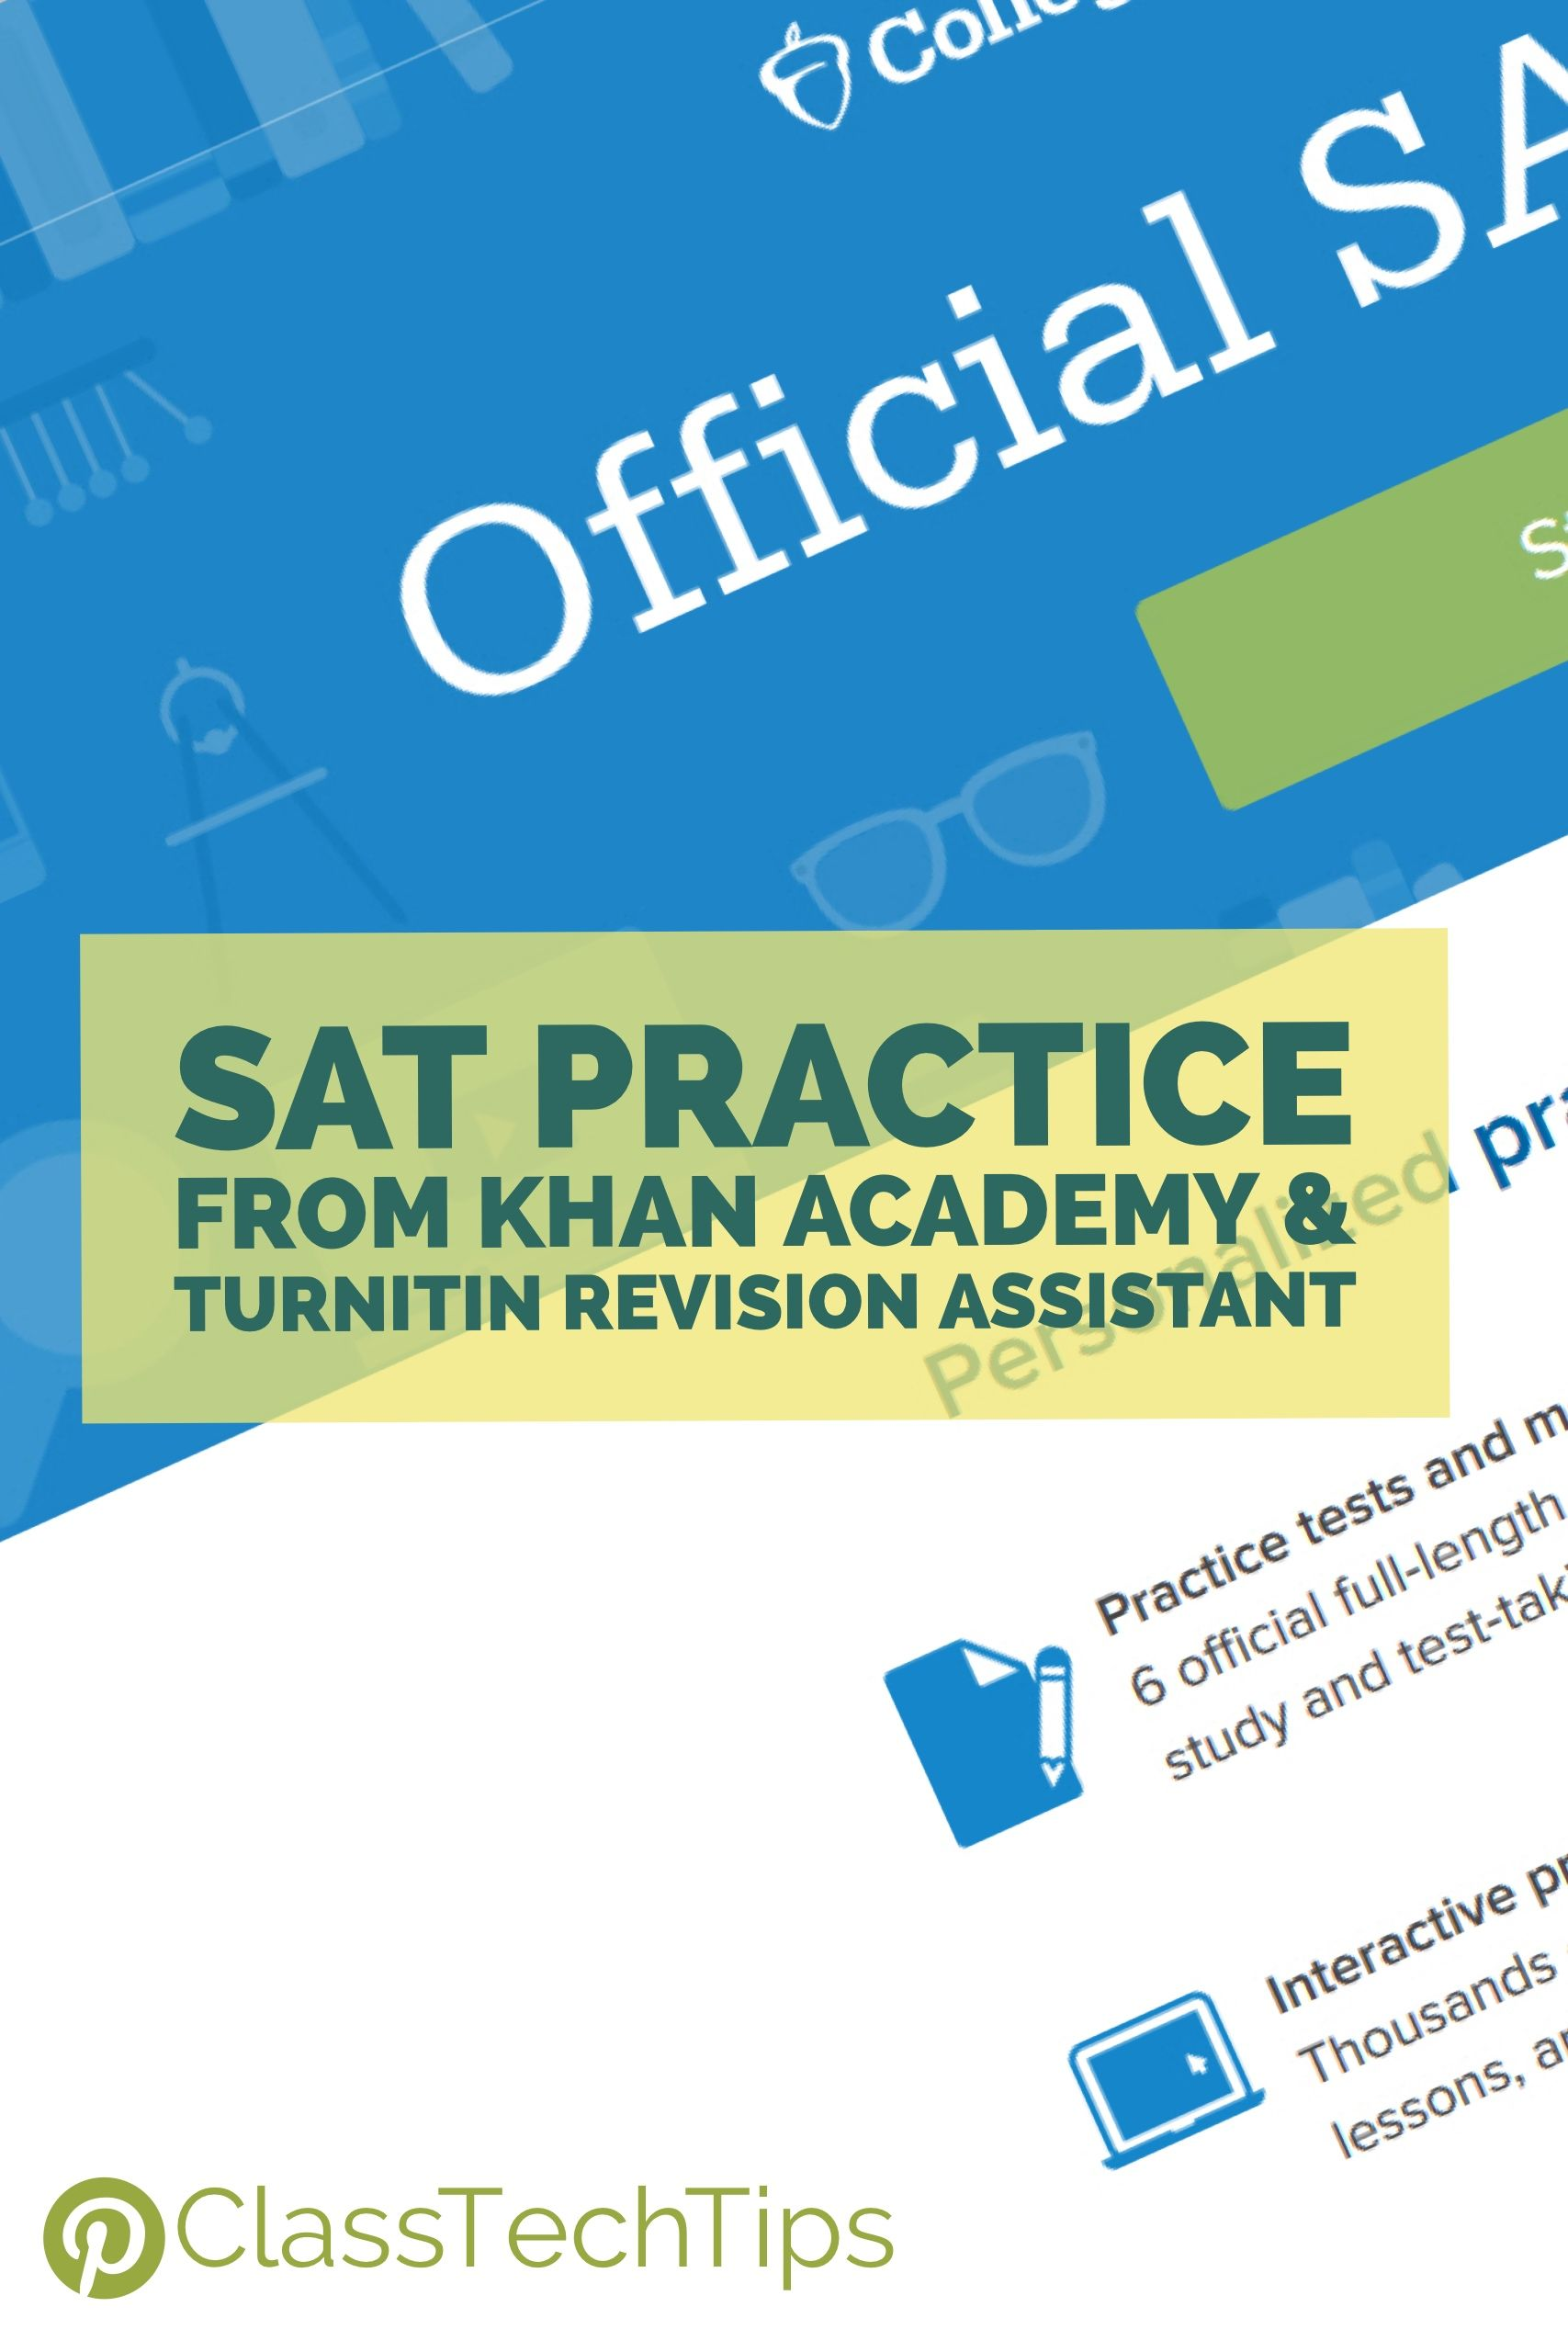 sat practice from khan academy turnitin revision assistant  sat practice from khan academy turnitin revision assistant